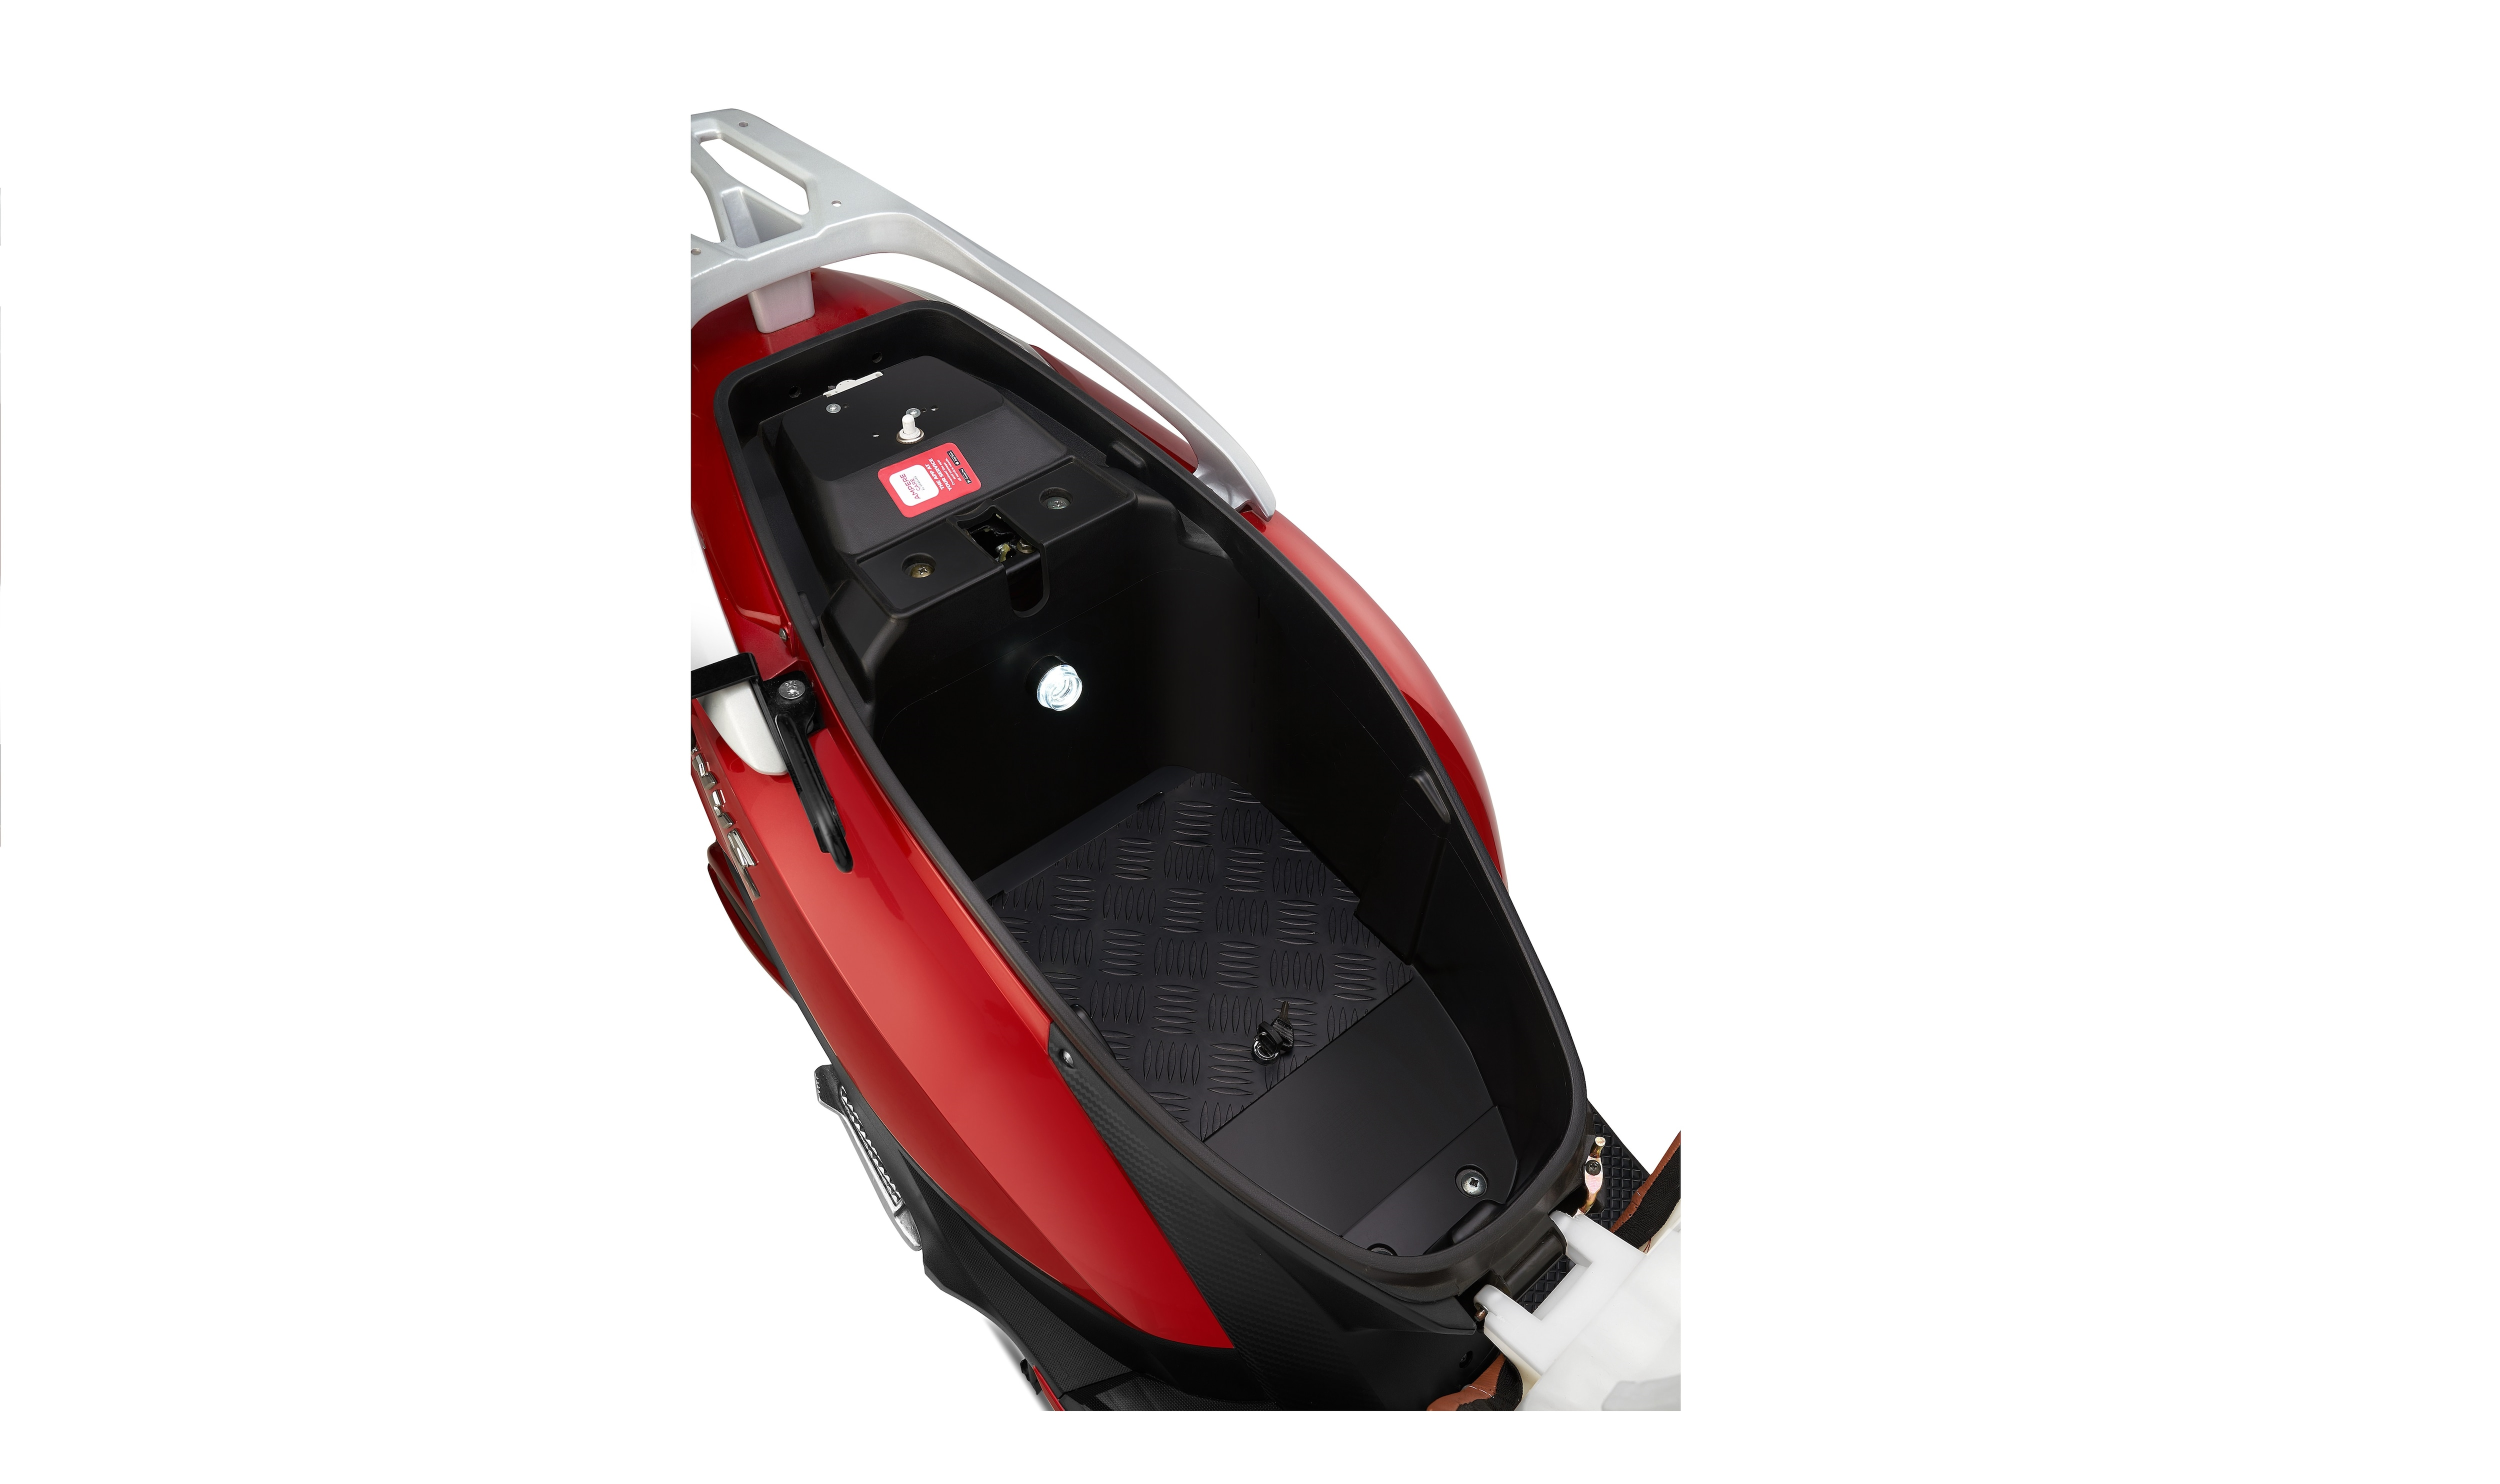 The new Magnus EX e-scooter gets a detachable lightweight & portable advanced lithium battery.